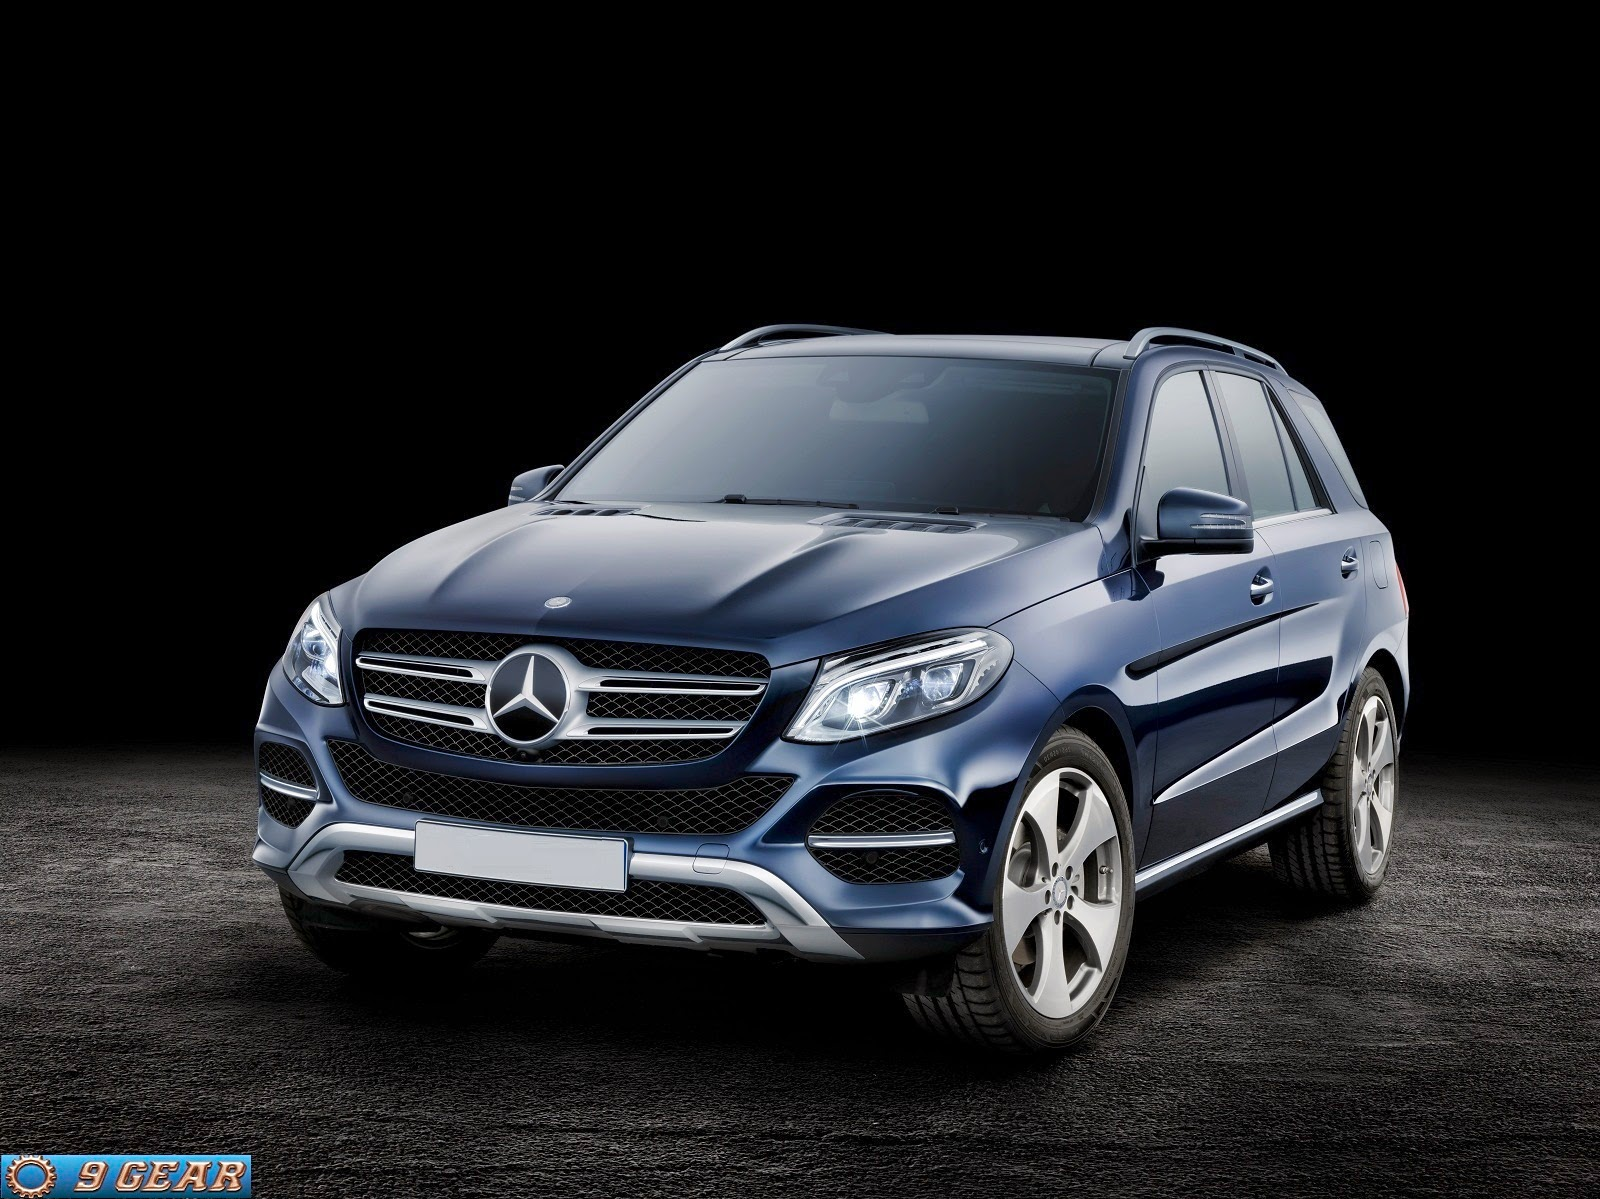 2016 mercedes benz gle 250 d diesel 204 hp car reviews new car pictures for 2018 2019. Black Bedroom Furniture Sets. Home Design Ideas